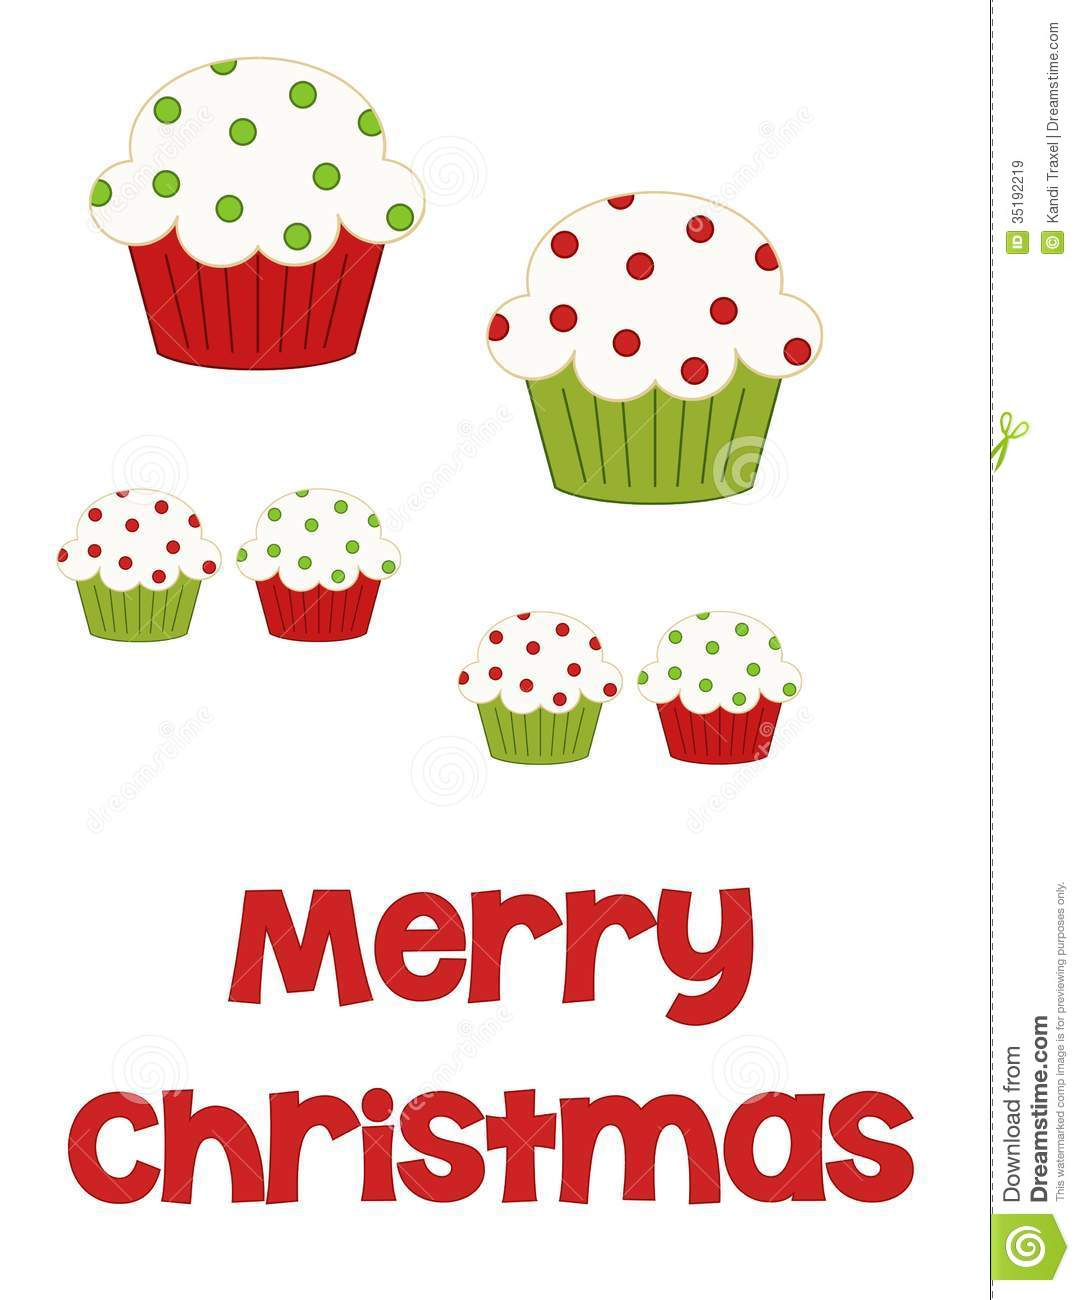 Merry Christmas Cupcakes Royalty Free Stock Images - Image: 35192219